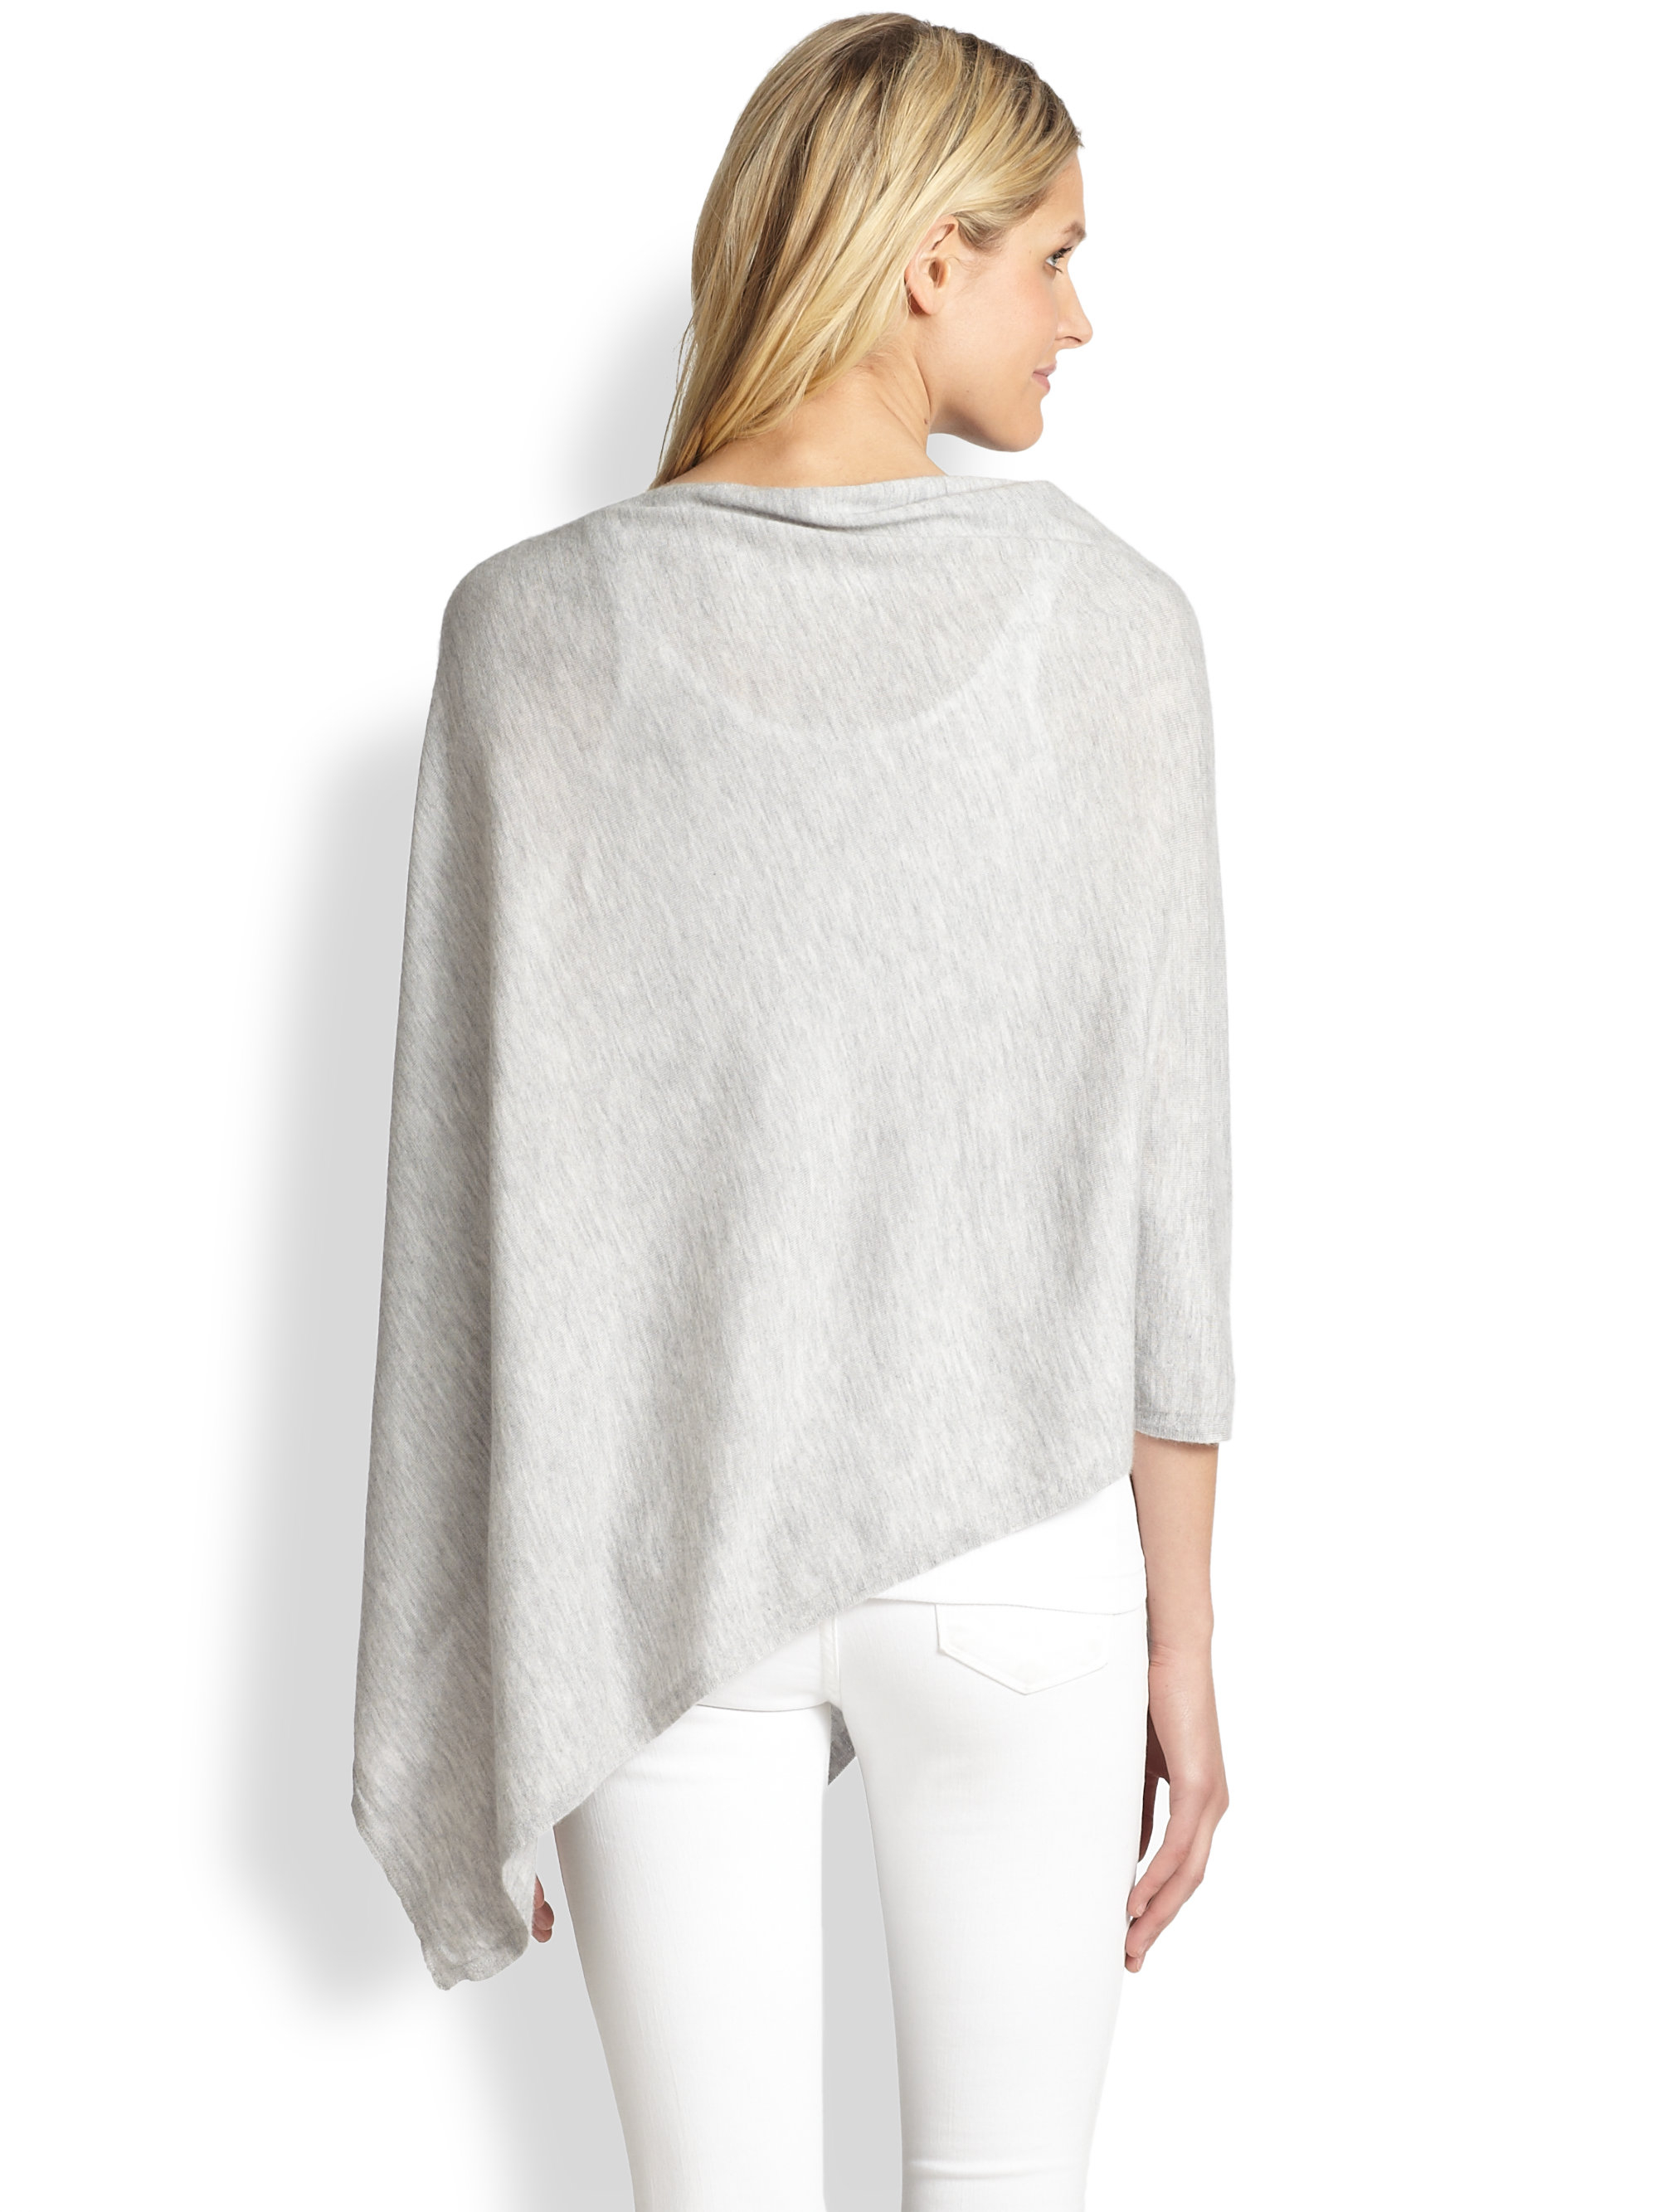 Eileen Fisher White Sweater